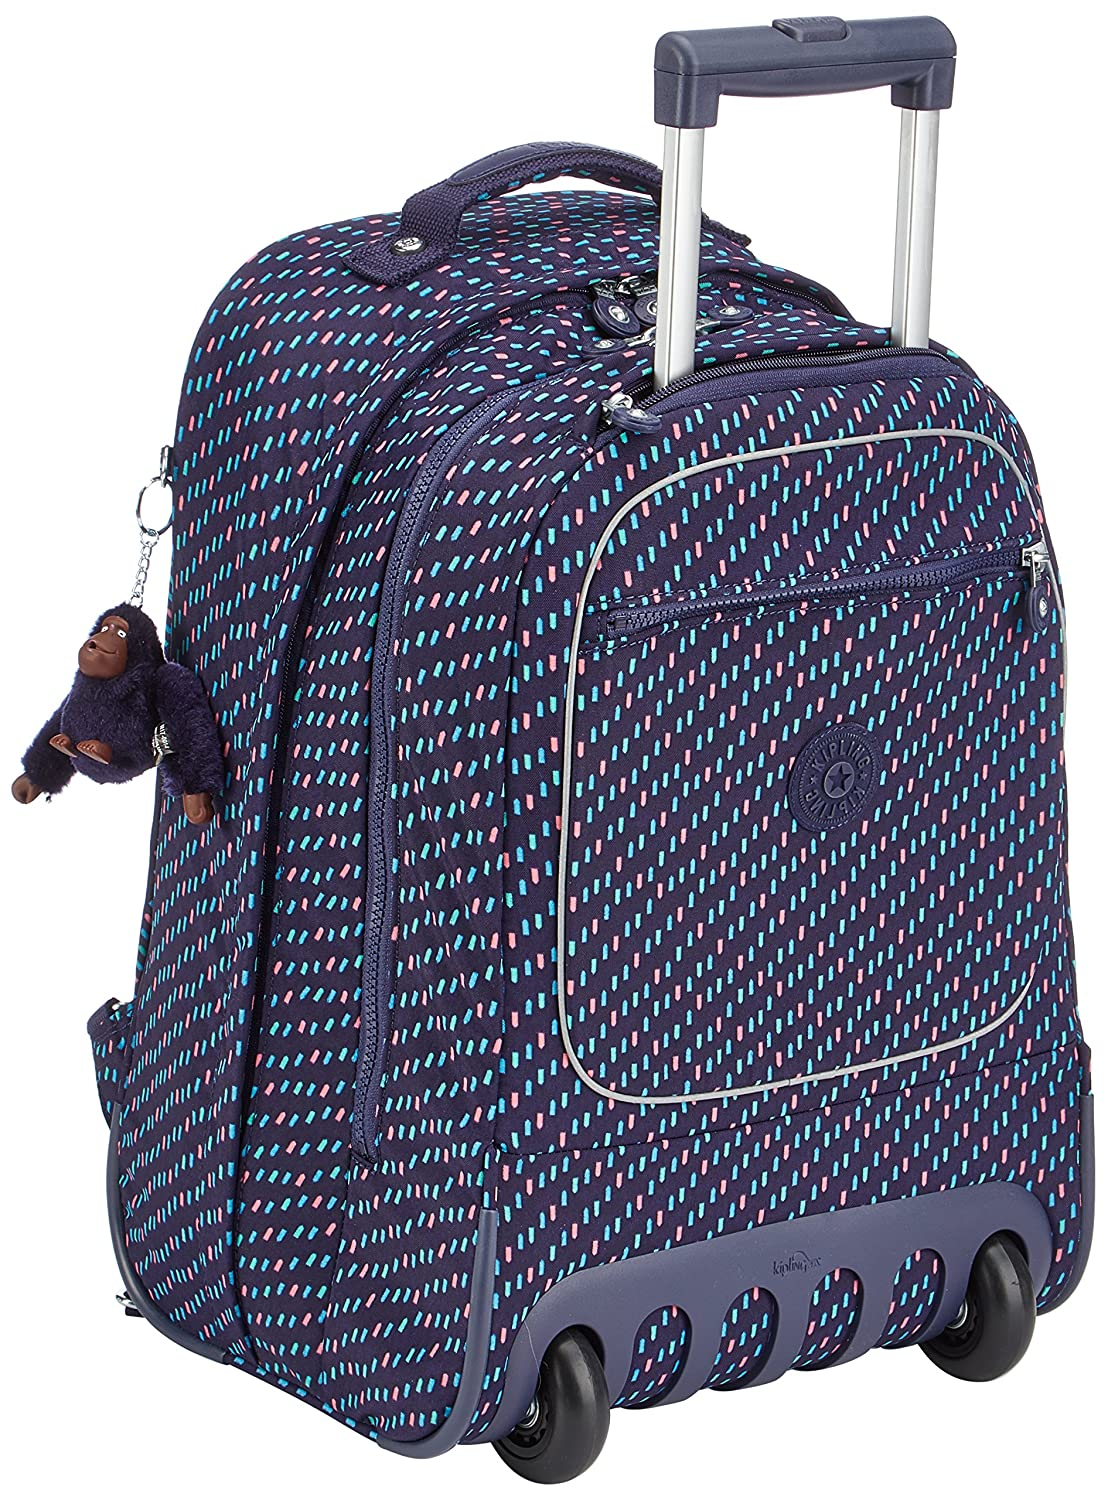 Kipling CLAS Soobin L Cartable, 49 cm, 28 liters, Bleu (Blue Tan Block) K1535930G